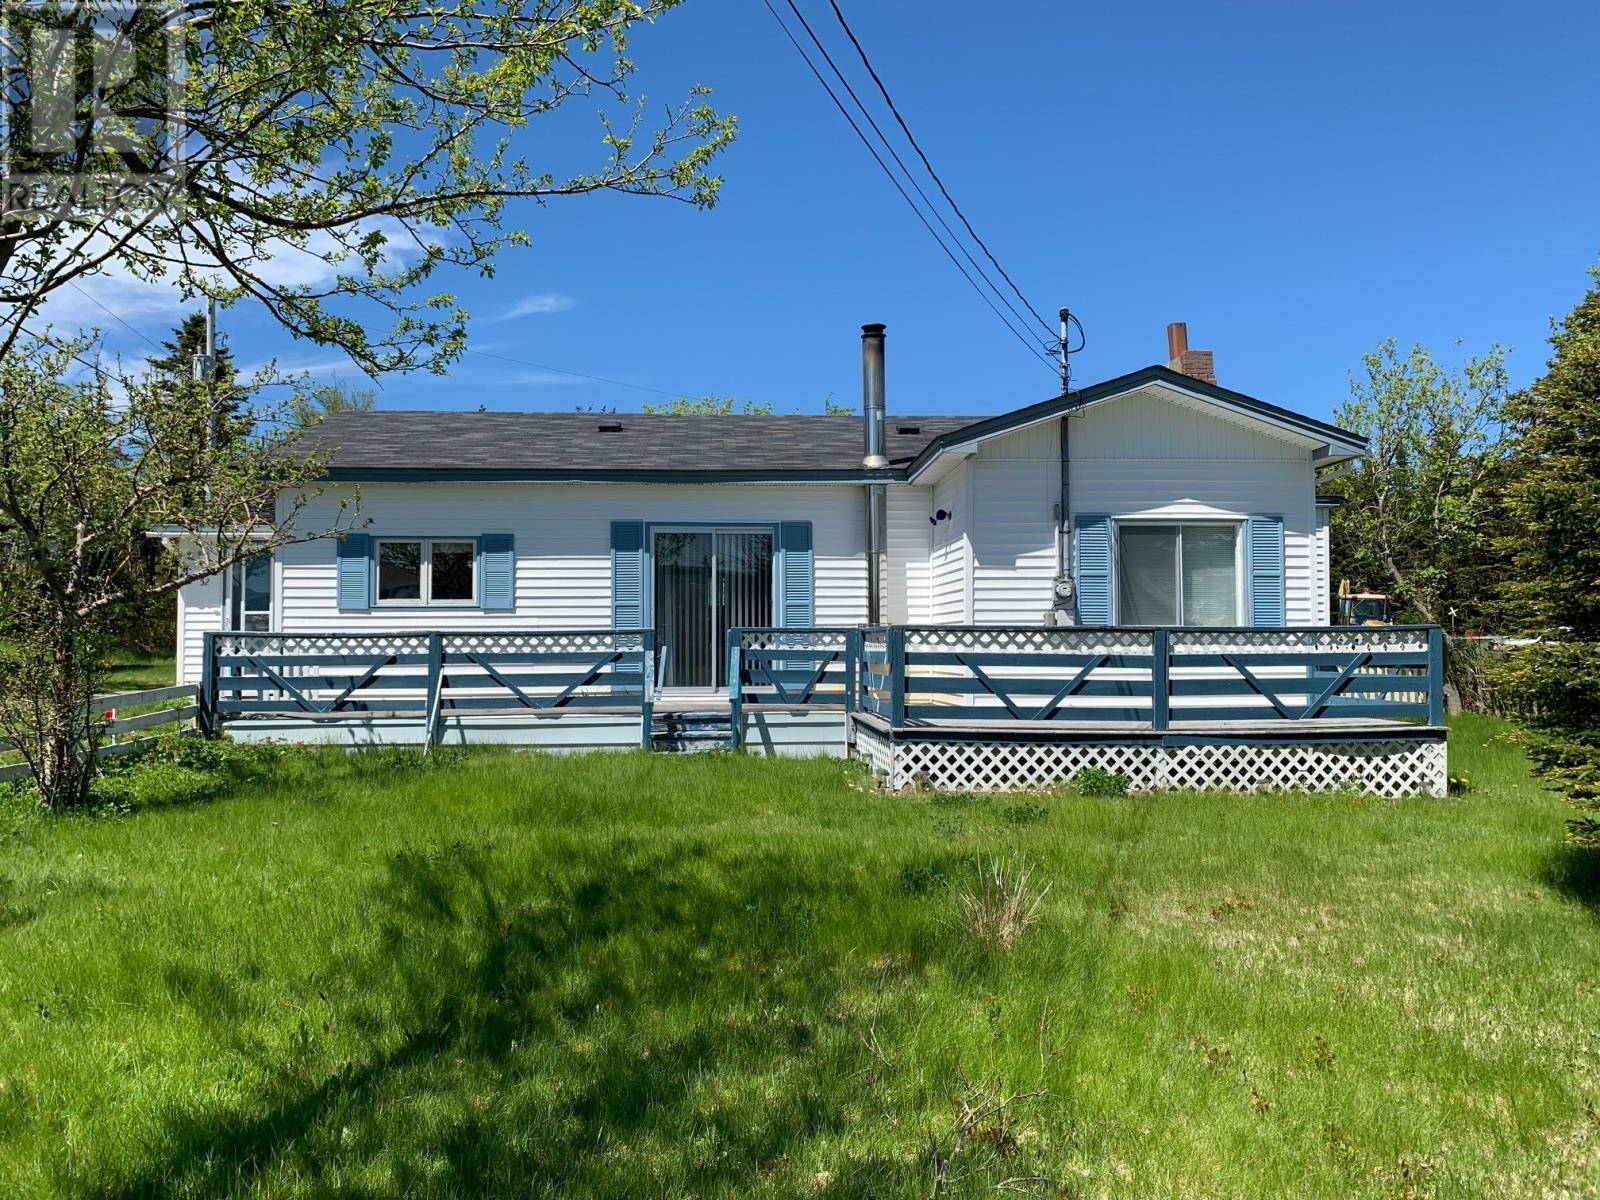 Residential property for sale at 52 Pitchers Path St. John's Newfoundland - MLS: 1211826